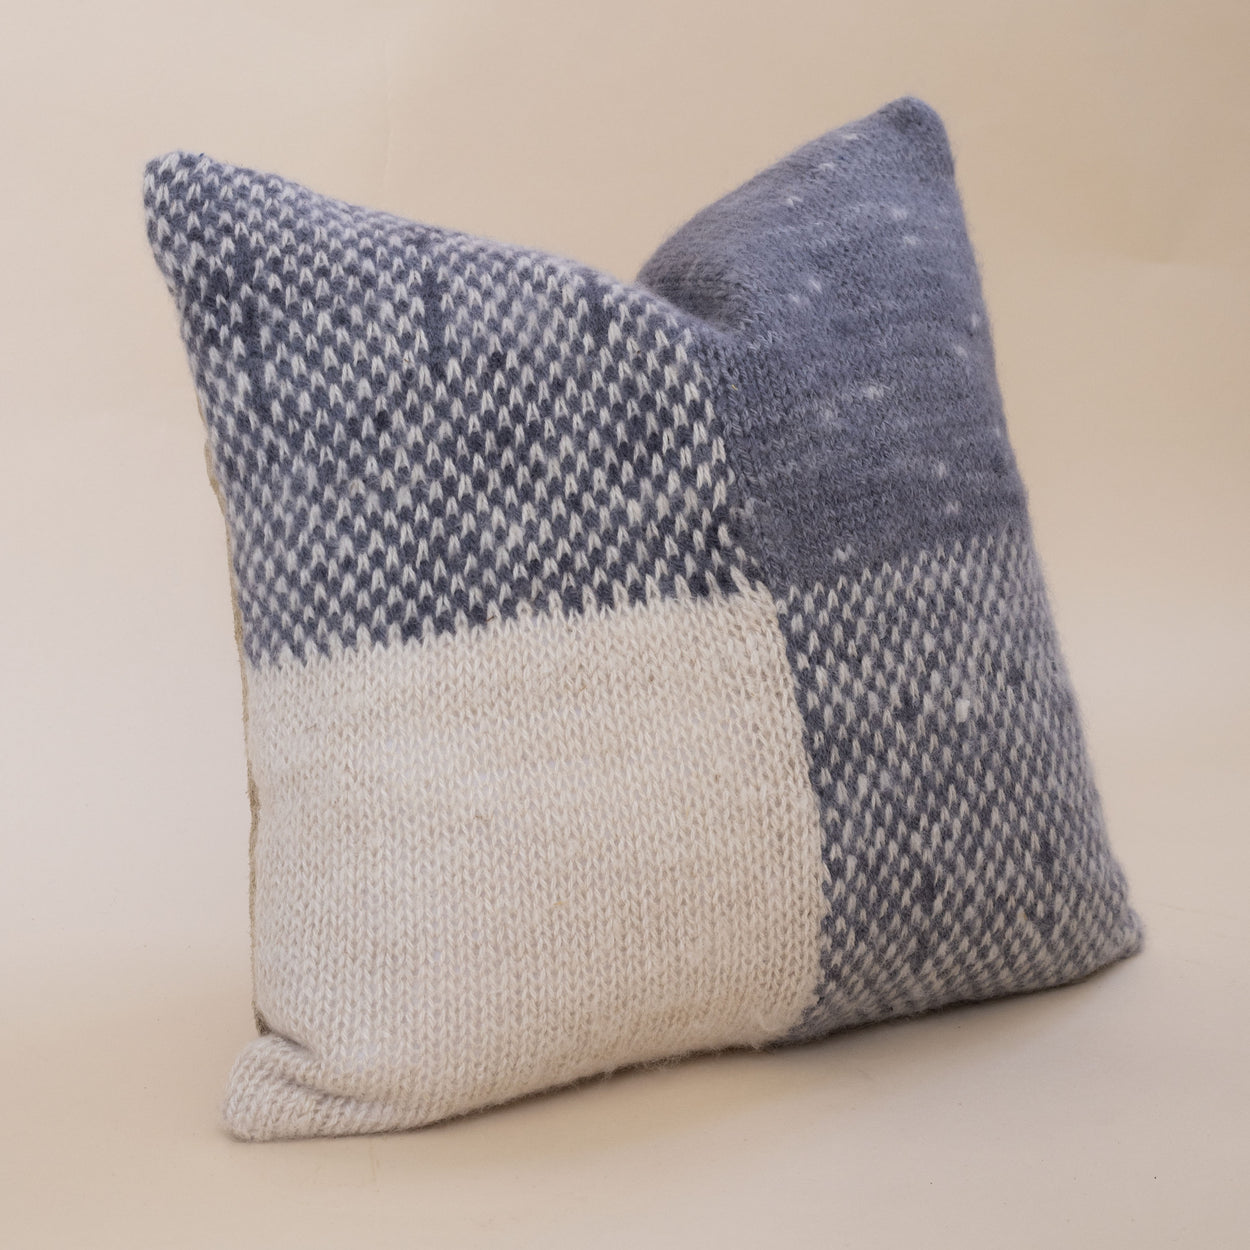 Storyteller Studio - Alpaca Gingham Pillow